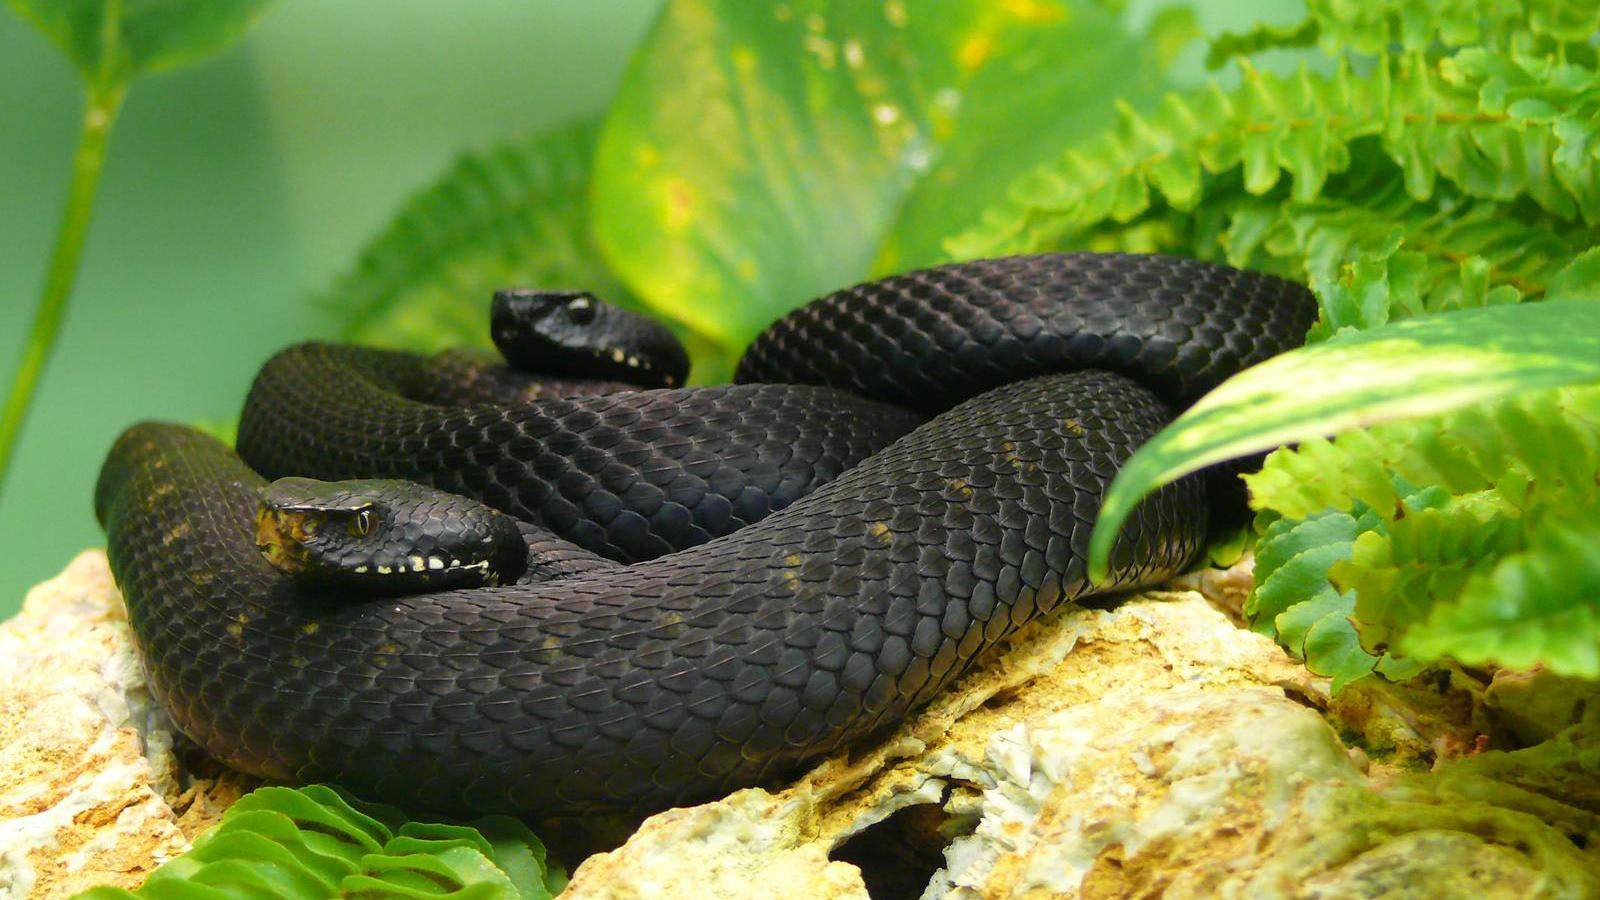 Black Mamba Snake Wallpapers | Black Mamba Snake Wallpapers HD ...